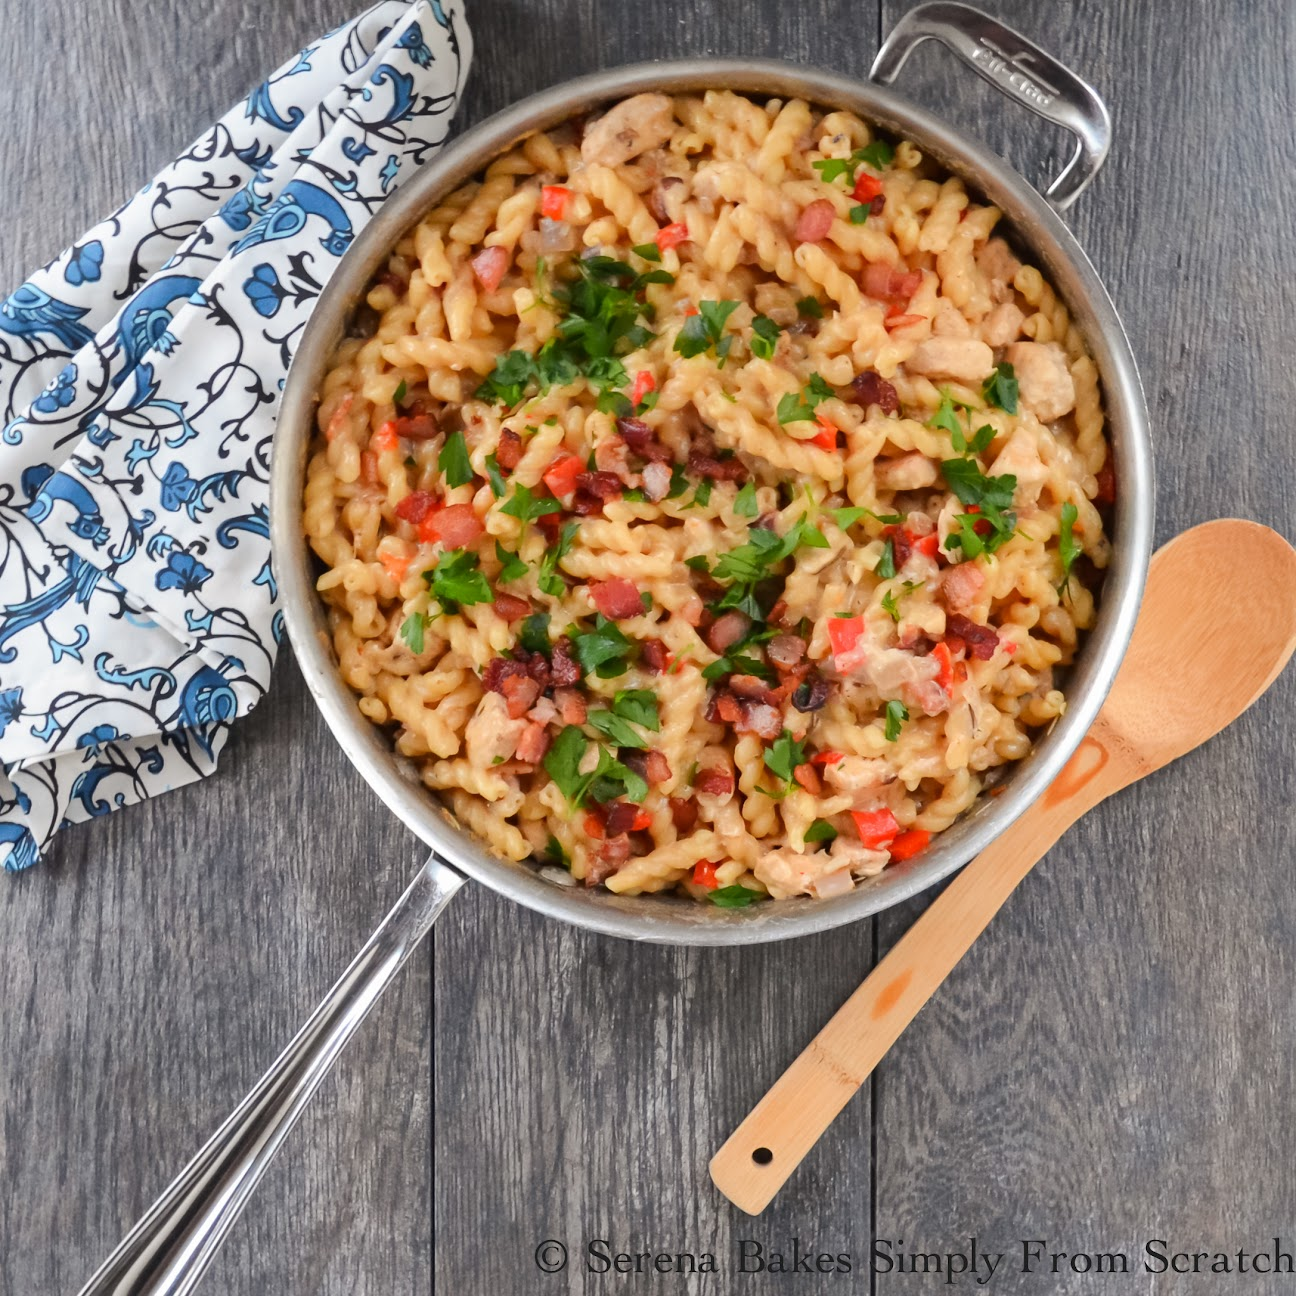 #2 Most Viewed Recipe 2014 Creamy Bacon Chicken Pasta Skillet